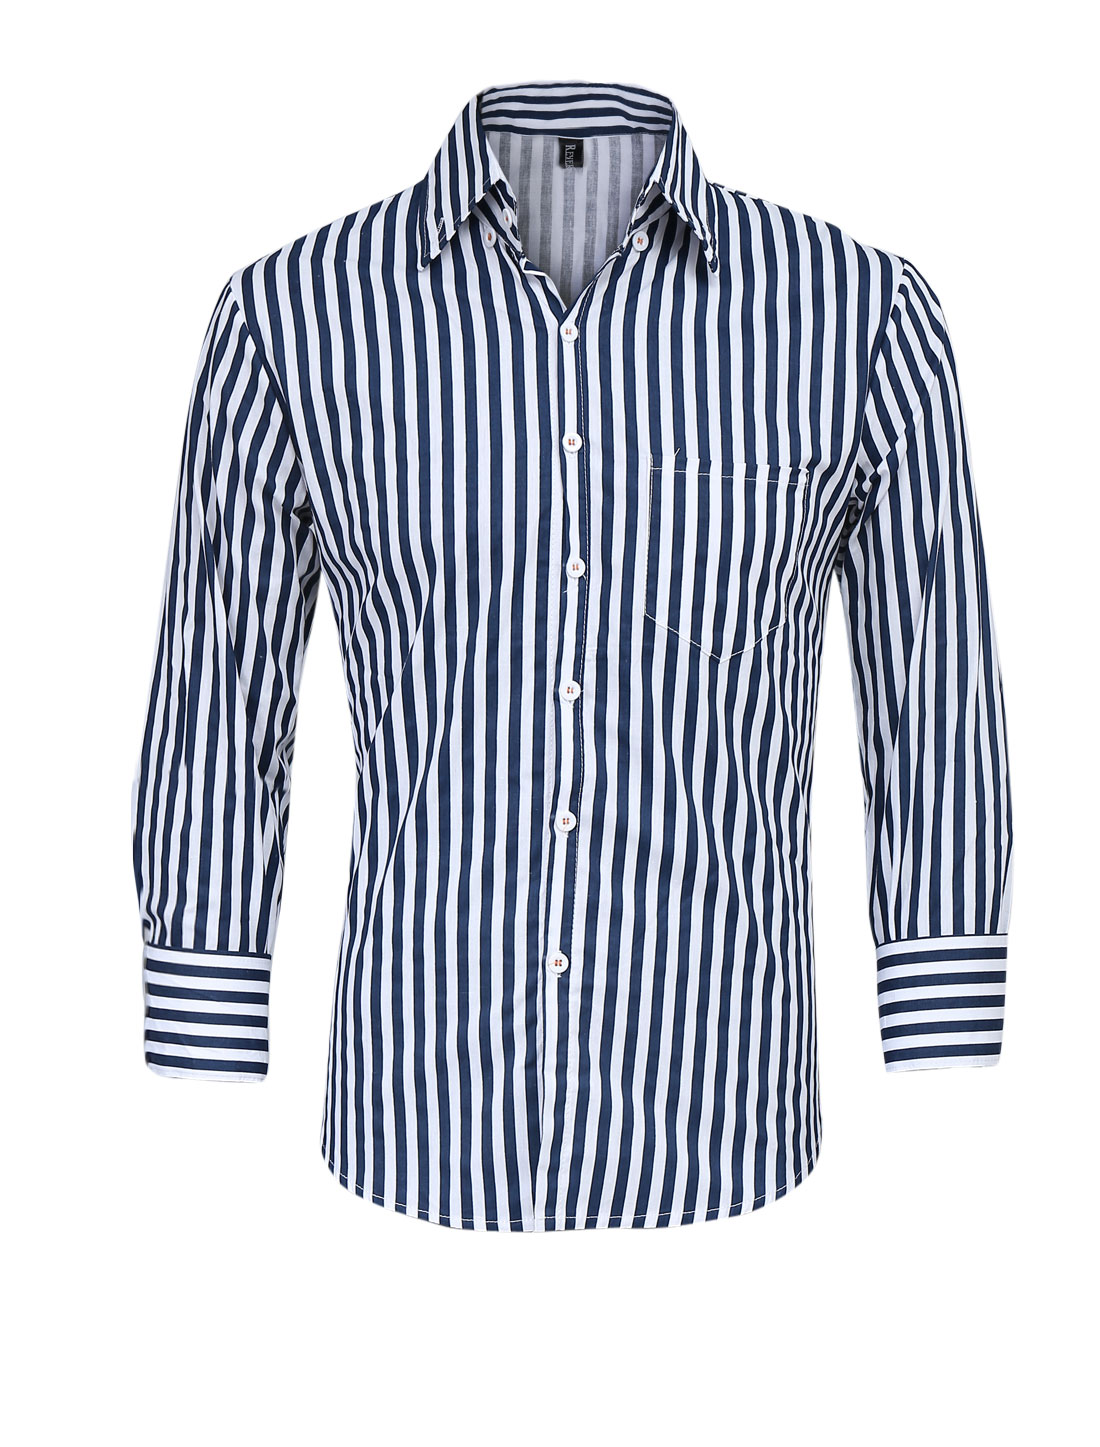 Men Long Sleeve Vertical Stripes Pattern Button Down Top Shirt Navy Blue M